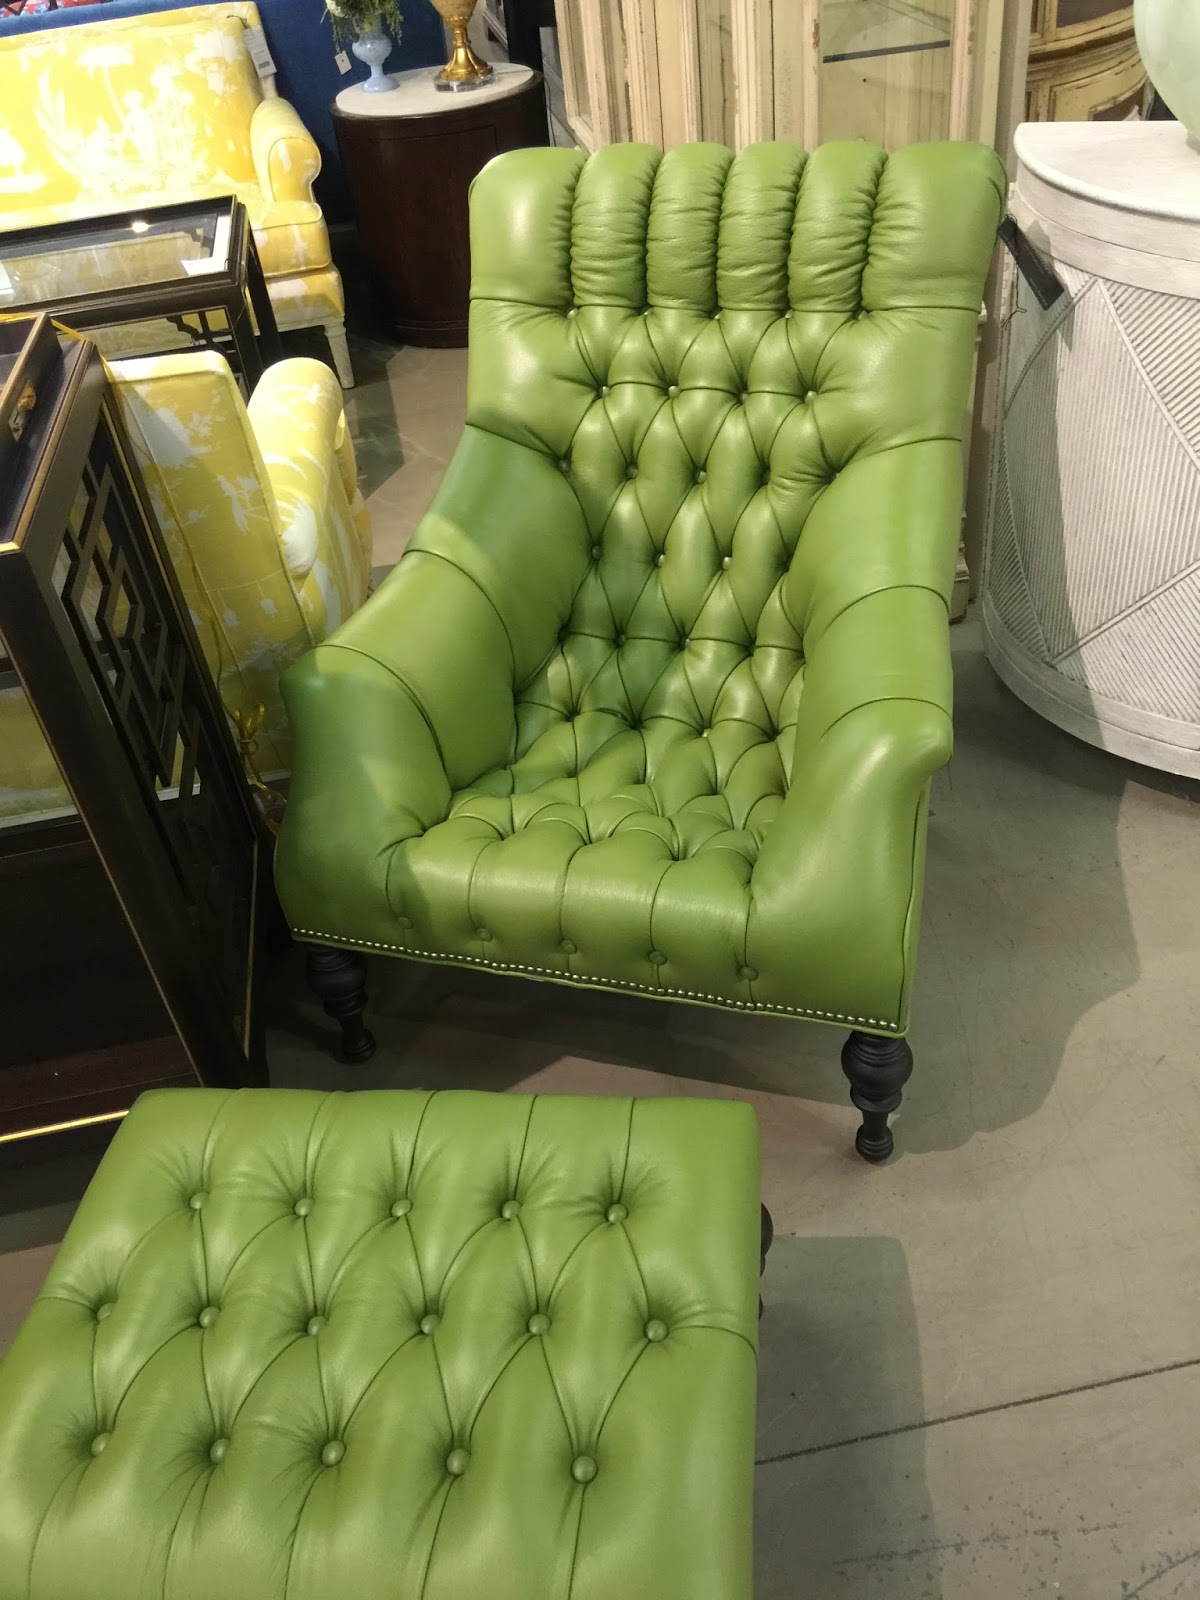 Have You Ever Been to Greenfront Furniture 1970 Dogwood Street